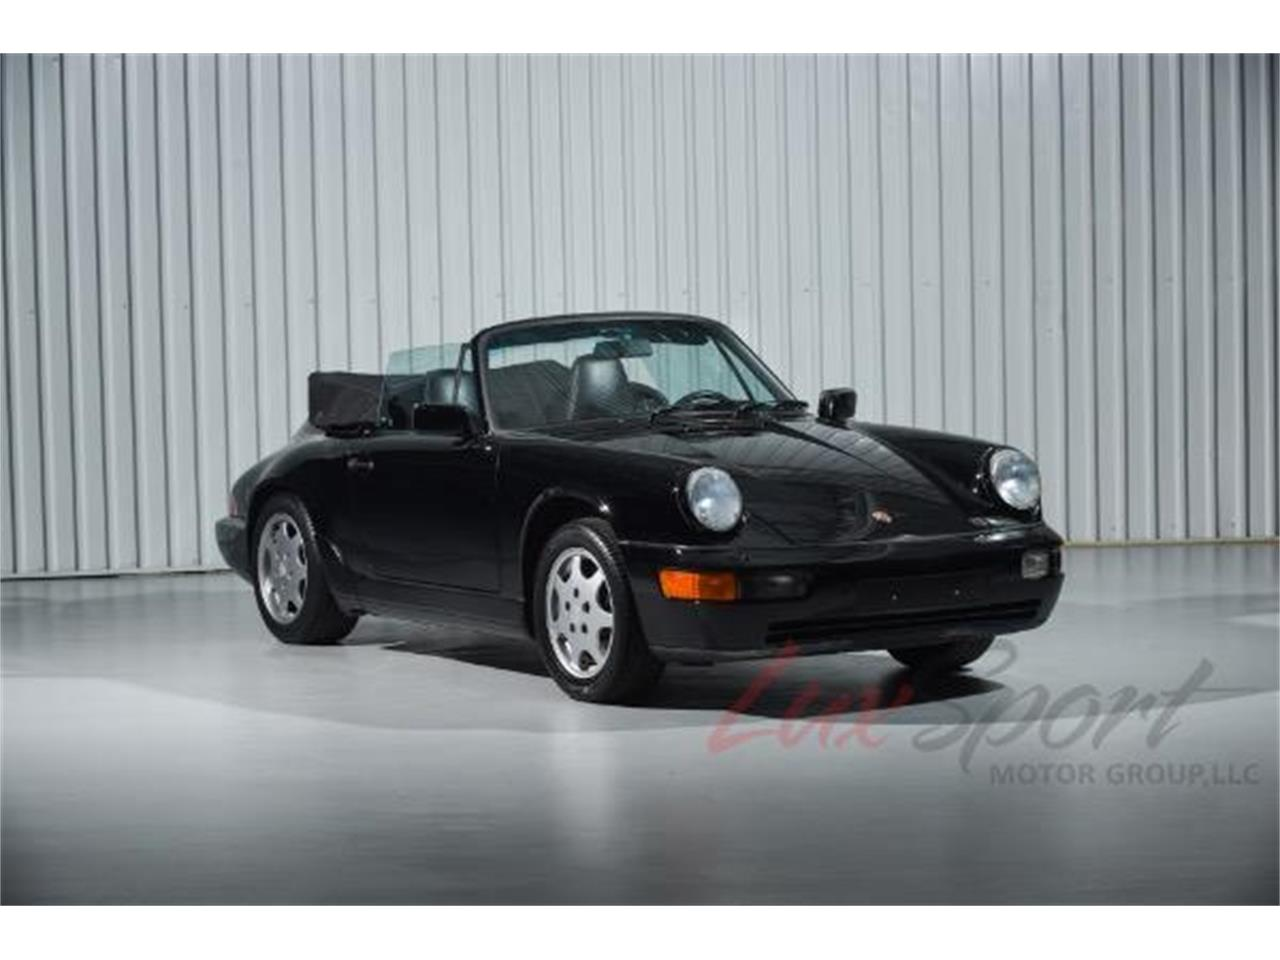 Large Picture of 1990 Porsche 964 Carrera 4 Cabriolet - MGT0